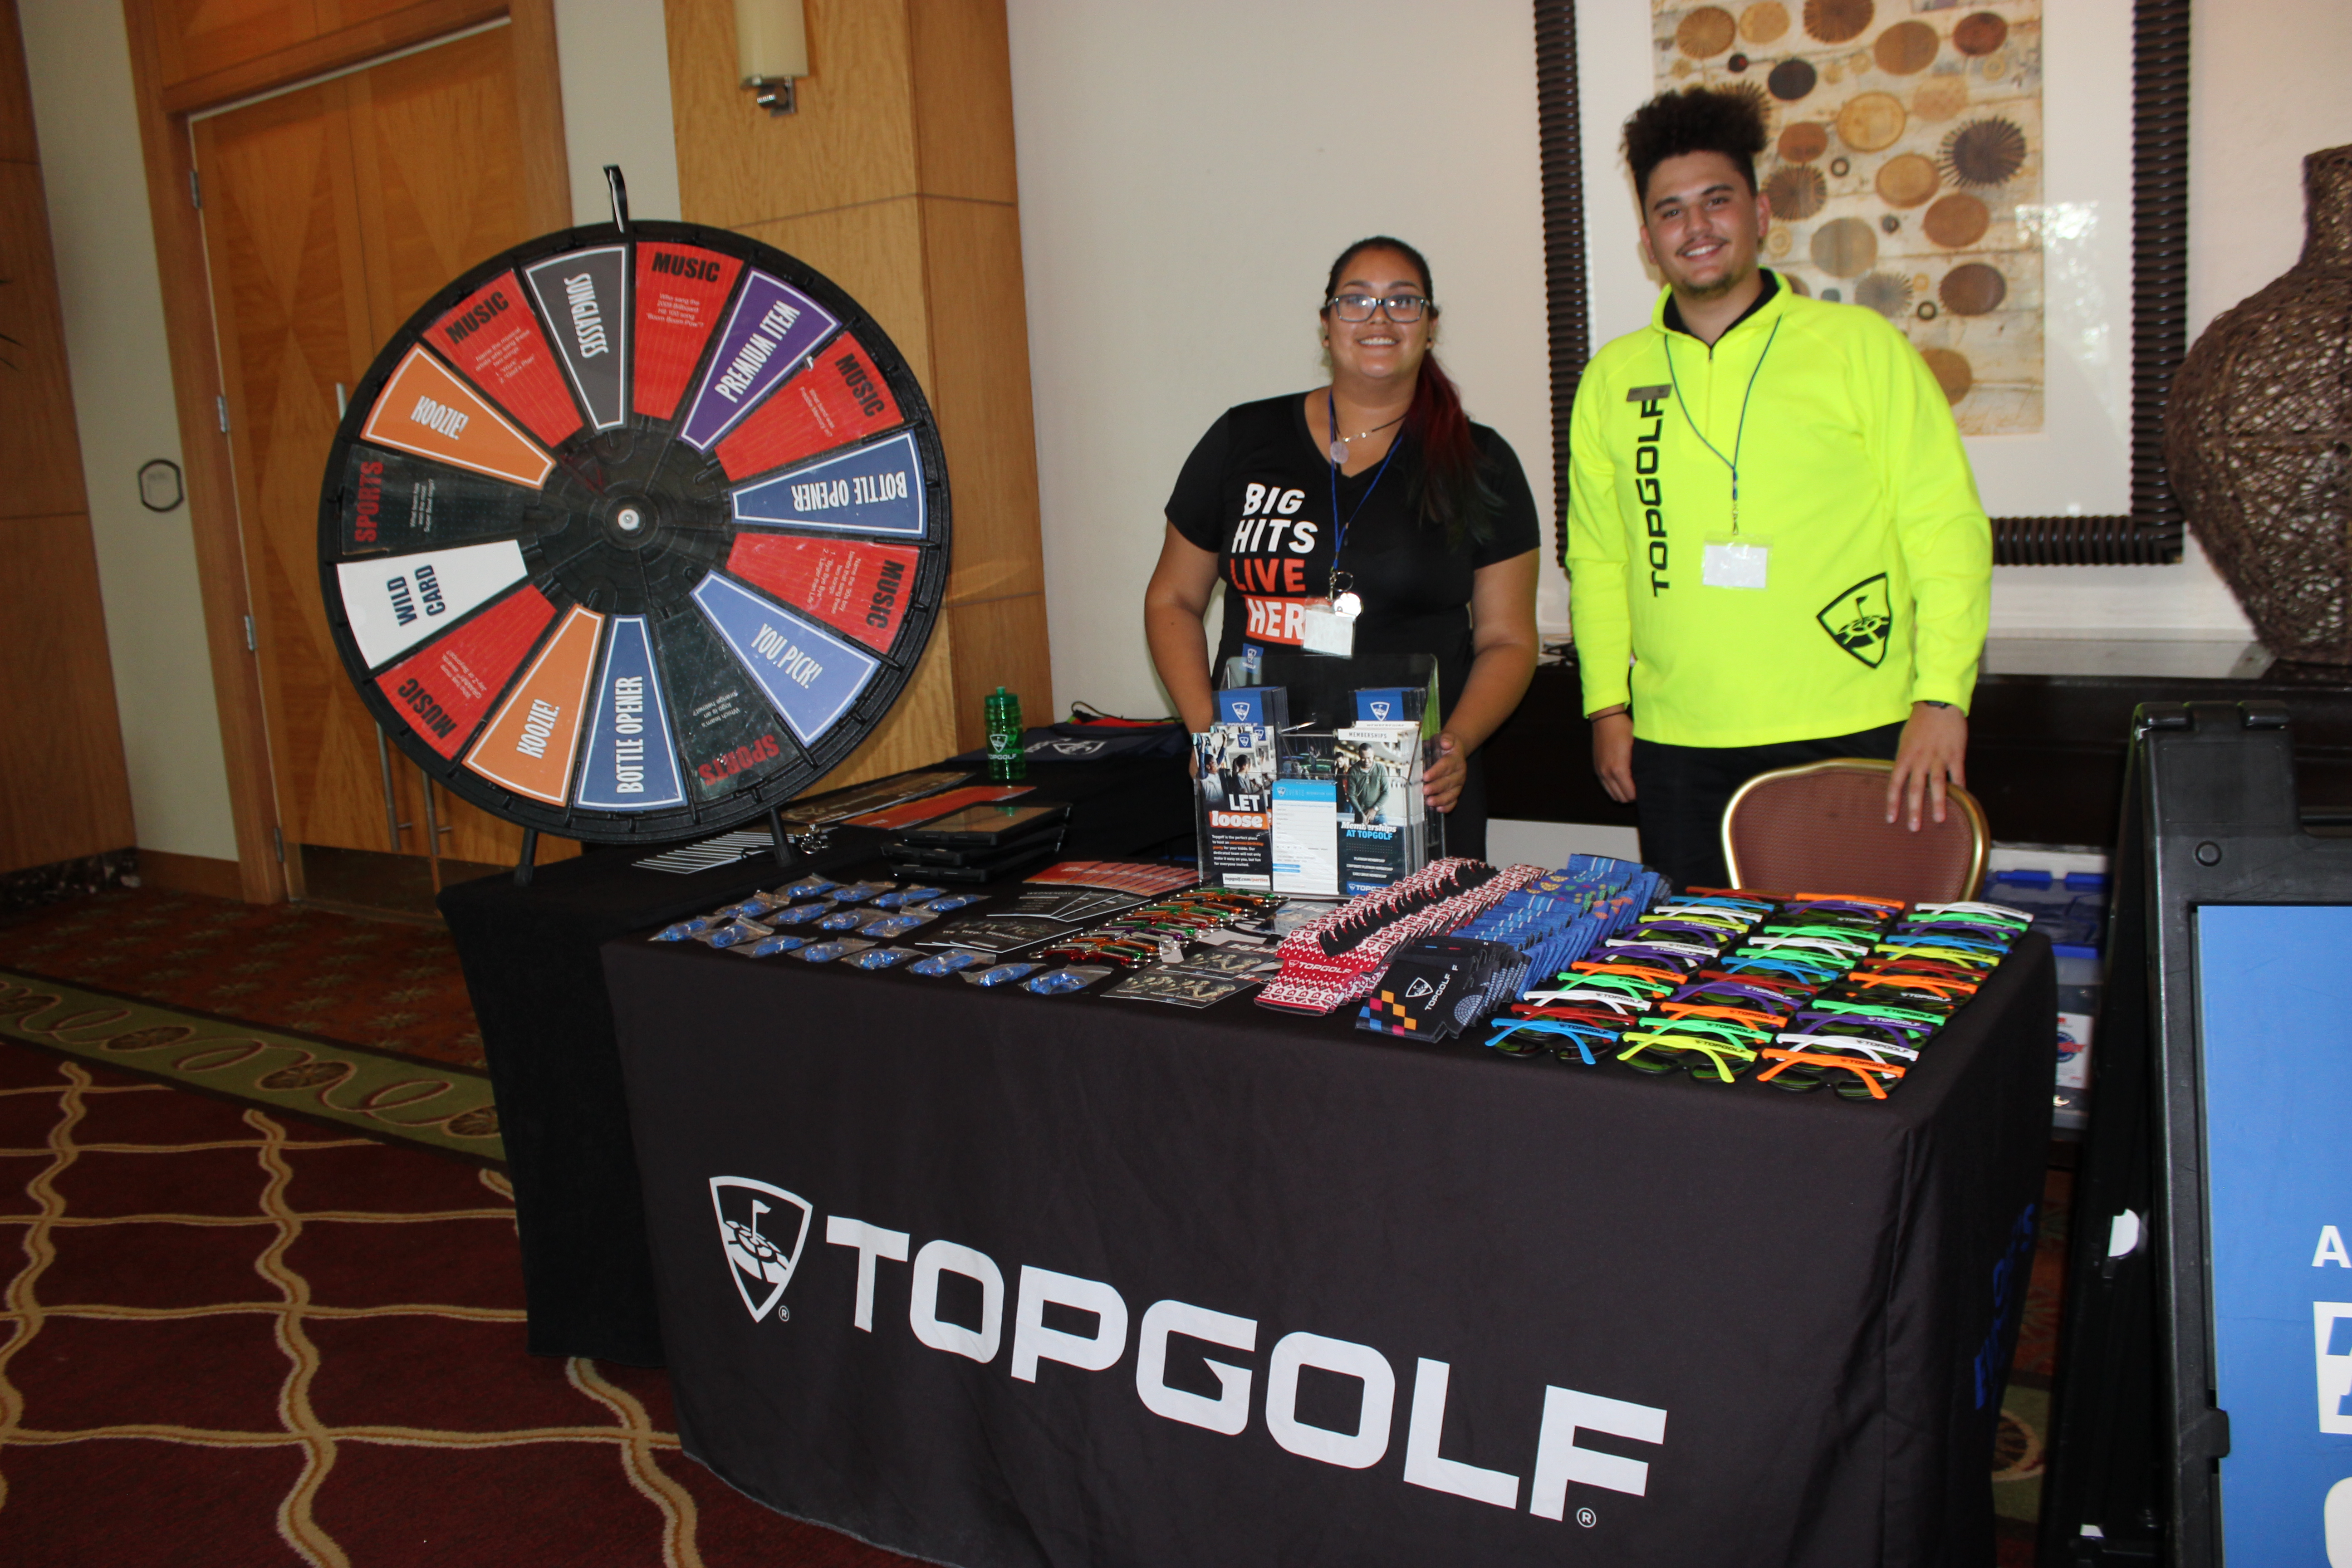 TopGolf representing business in ExpoMiami 2018 hosted by the Doral Chamber of Commerce.